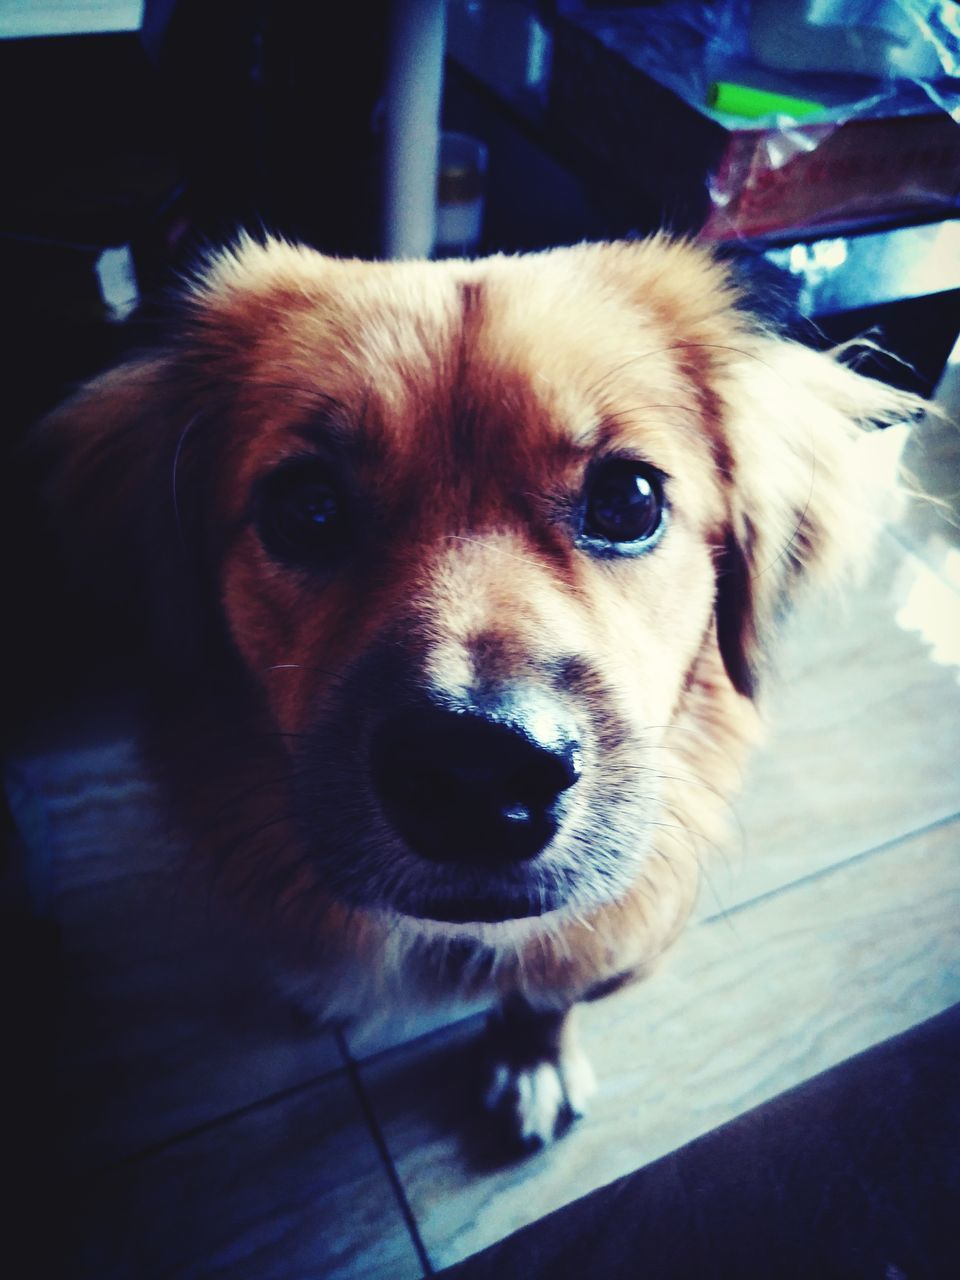 dog, one animal, looking at camera, animal themes, pets, close-up, portrait, domestic animals, indoors, no people, mammal, day